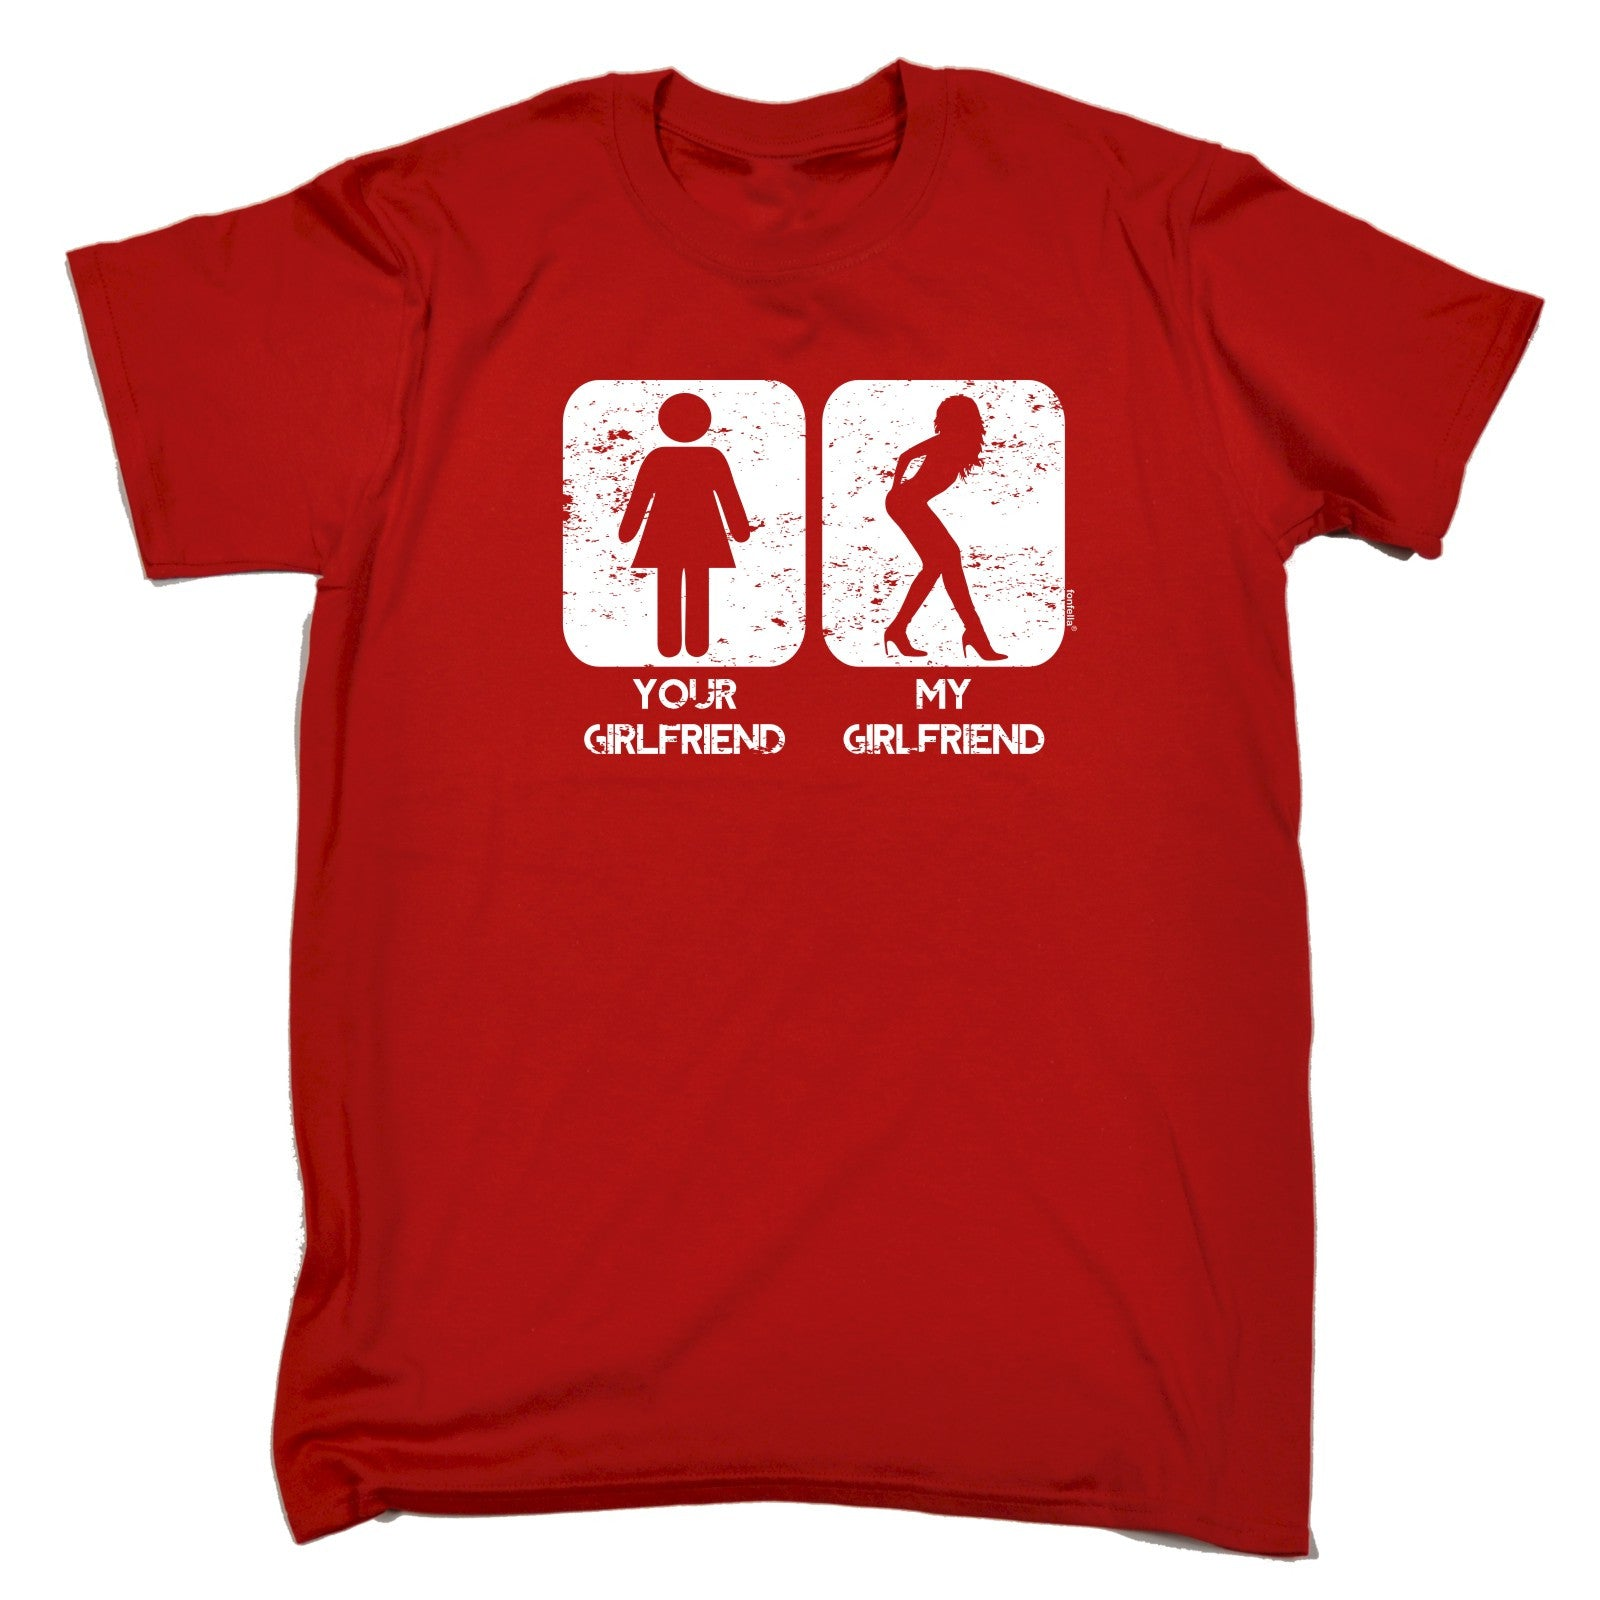 YOUR GIRLFRIEND MY GIRLFRIEND T SHIRT Tee Partner Funny Birthday